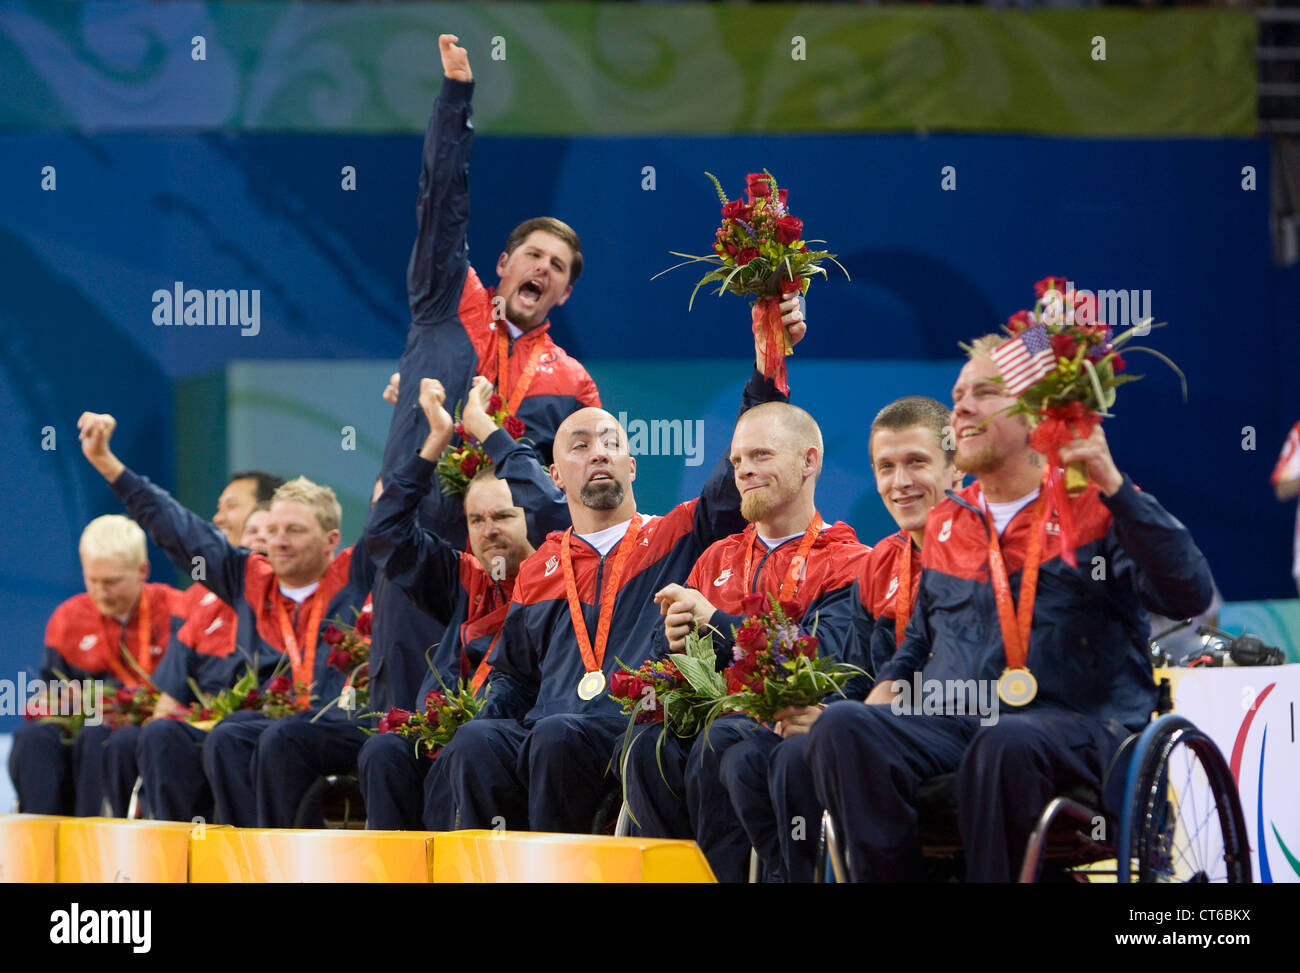 Beijing, China September 14, 2008: Paralympic Games showing the United States wheelchair rugby team after winning - Stock Image